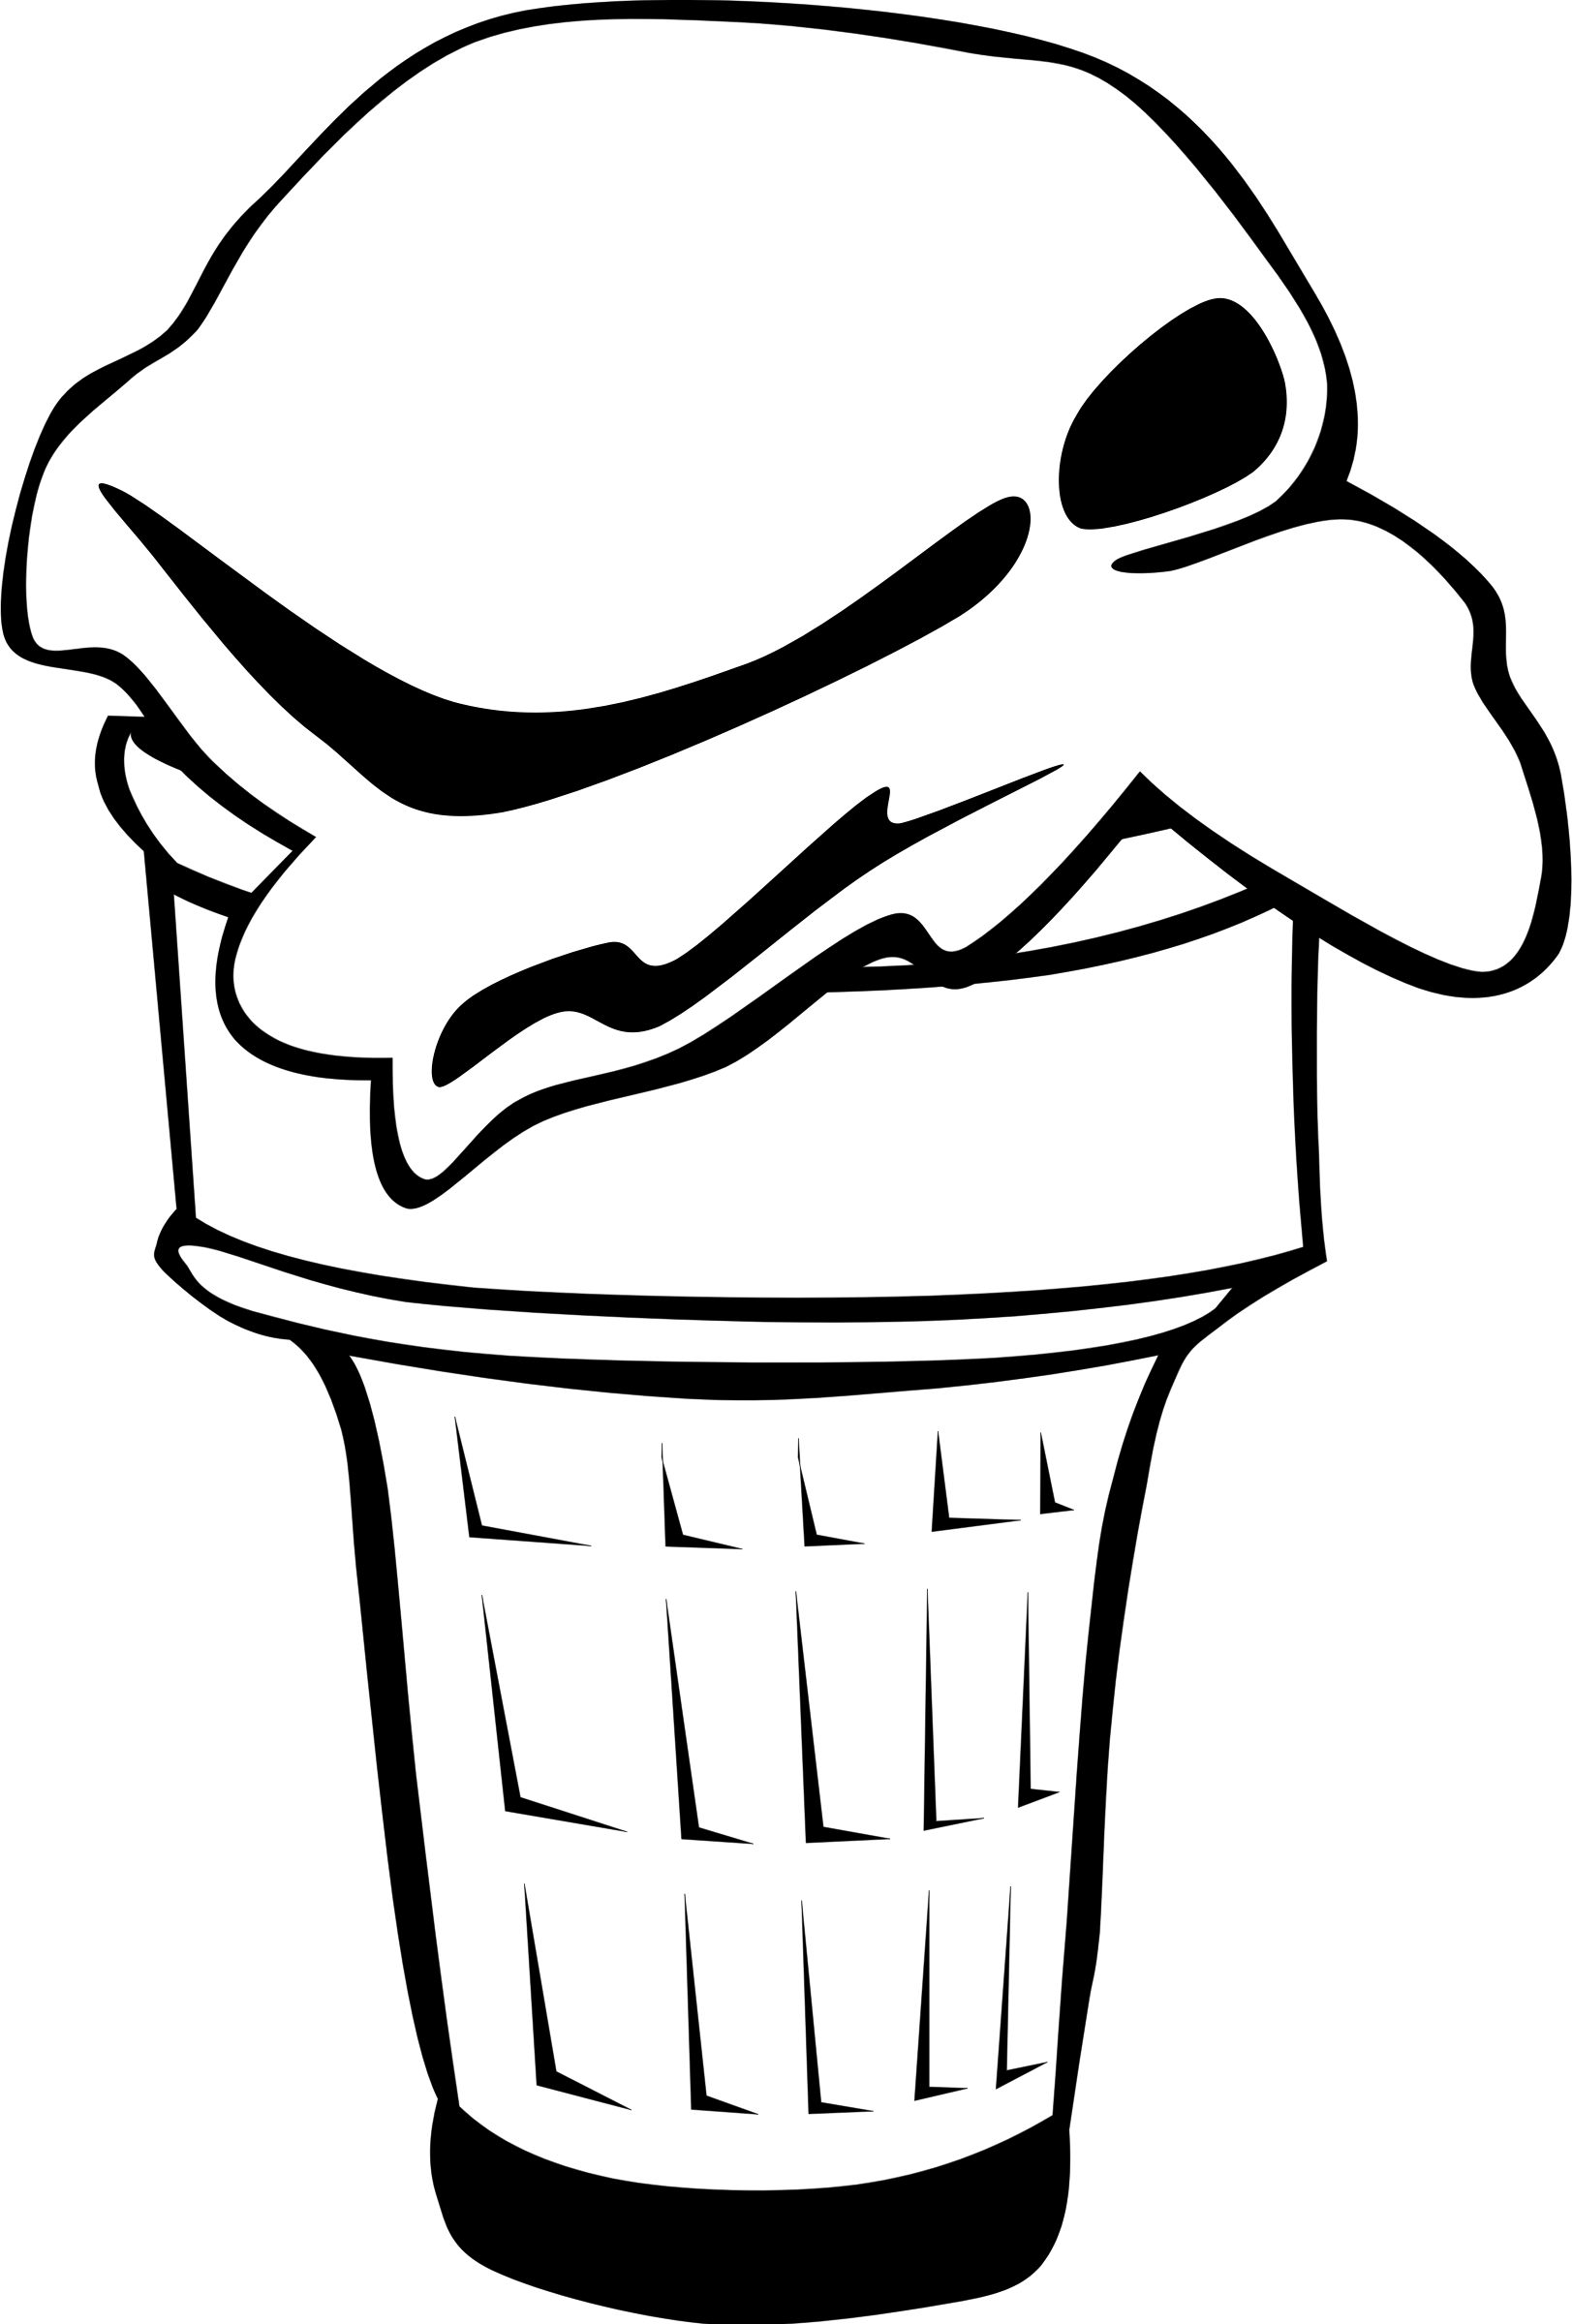 White clipart ice cream. Snow cone drawing at